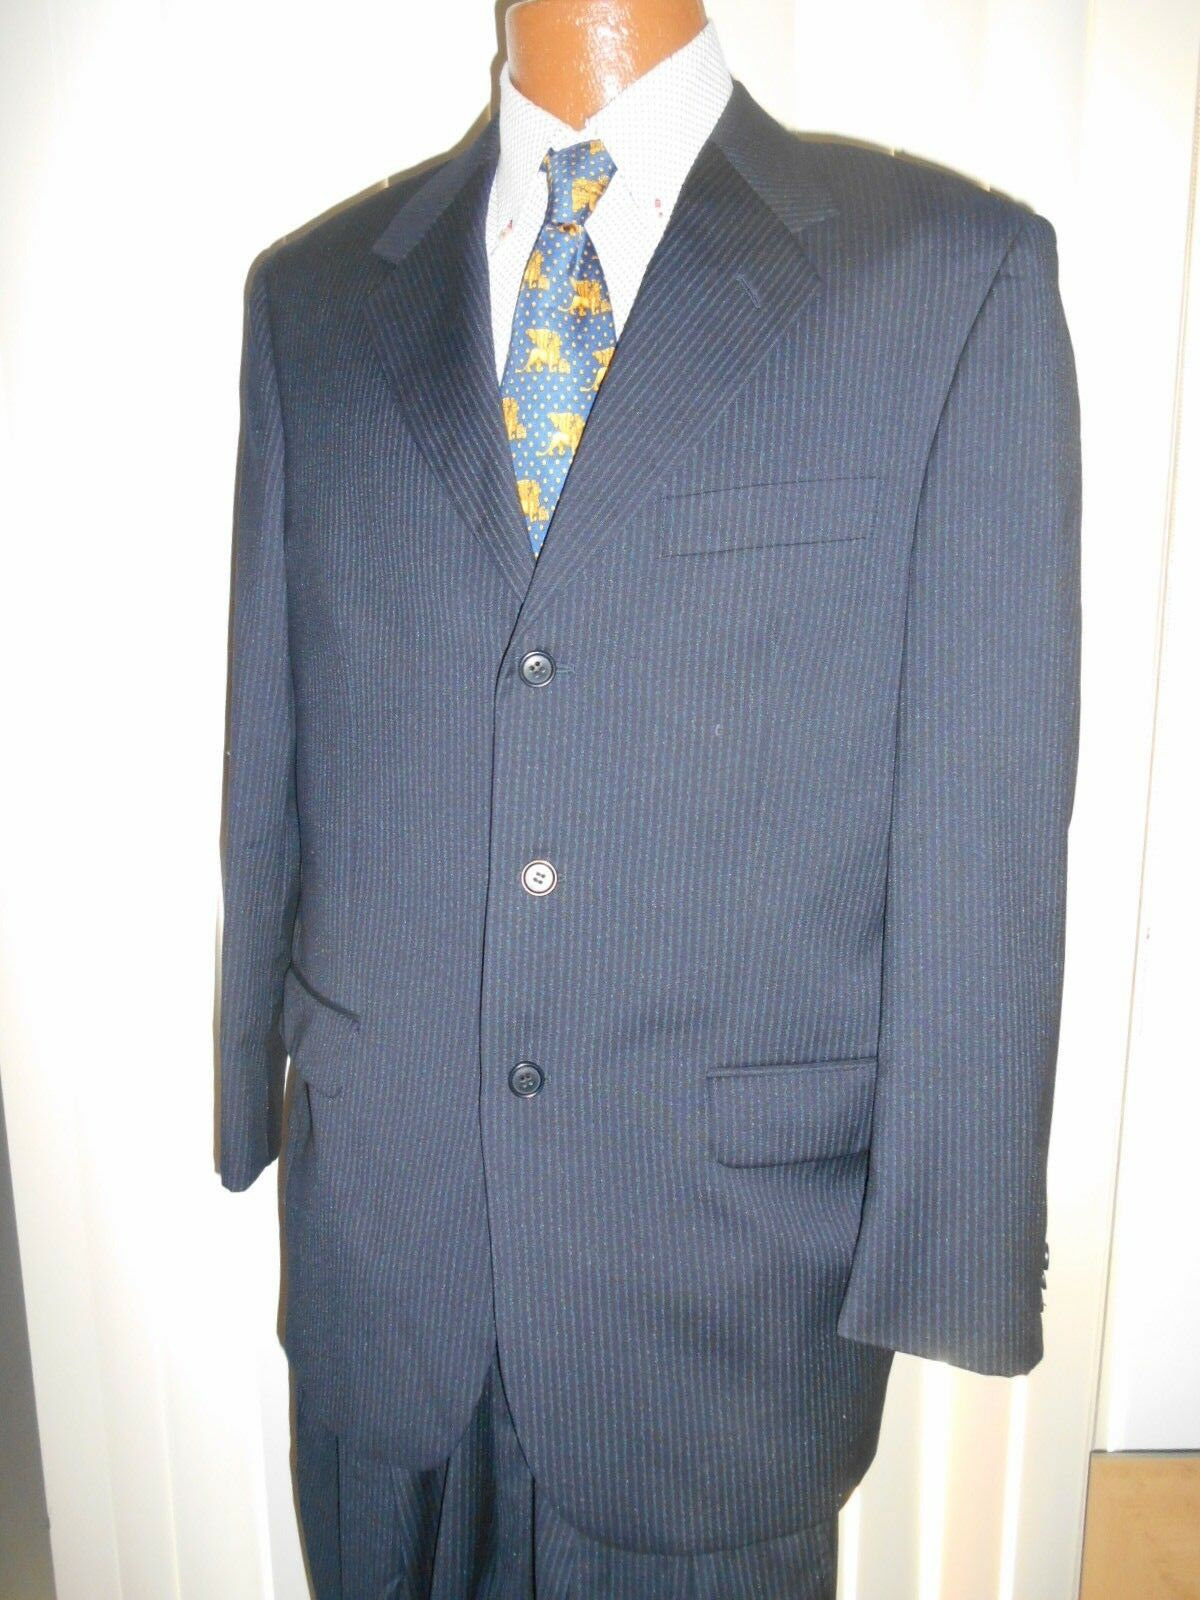 LORO PIANA PINSTRIPE SUIT SIZE 40 R IN EXCELLENT CONDITION..   FROM ITALY.